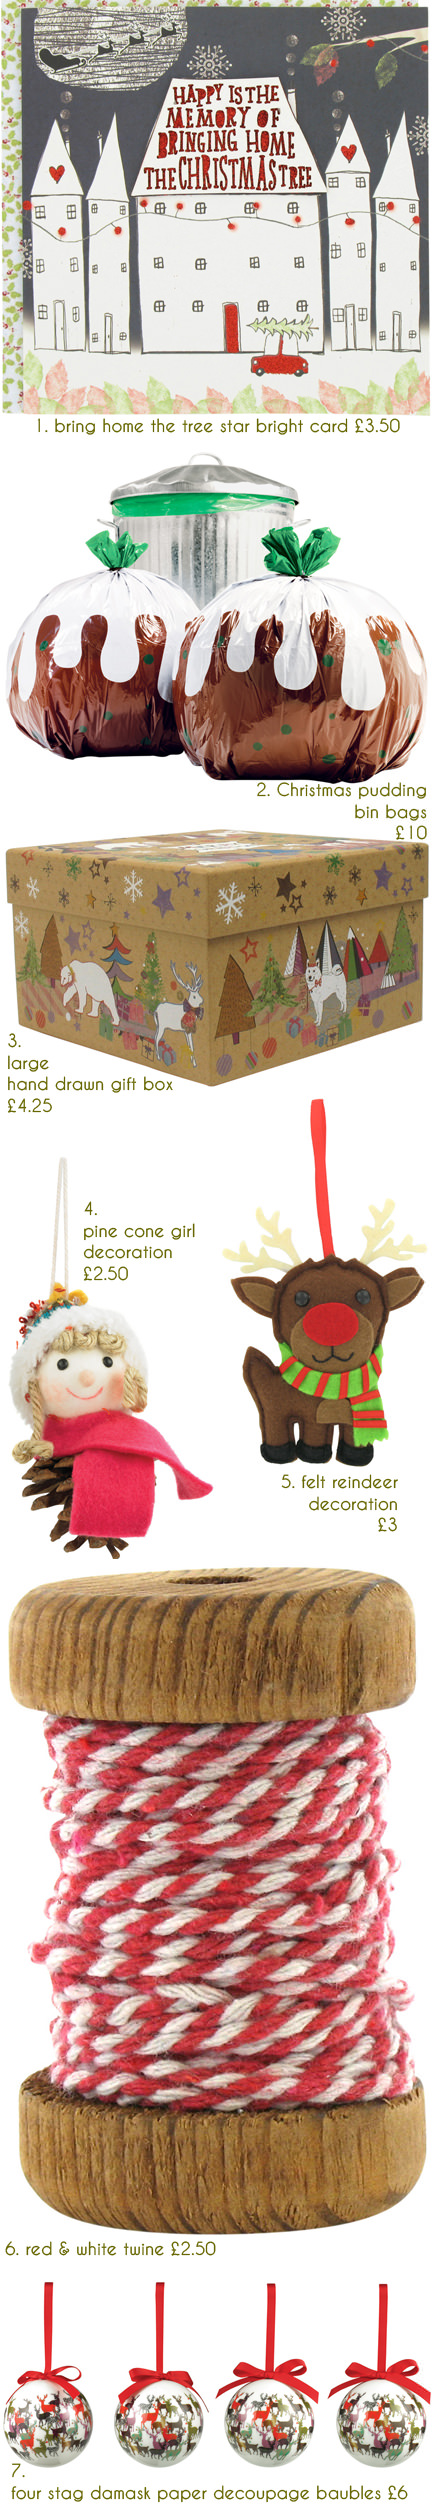 selection of festive Christmas items for sale on the Paperchase website